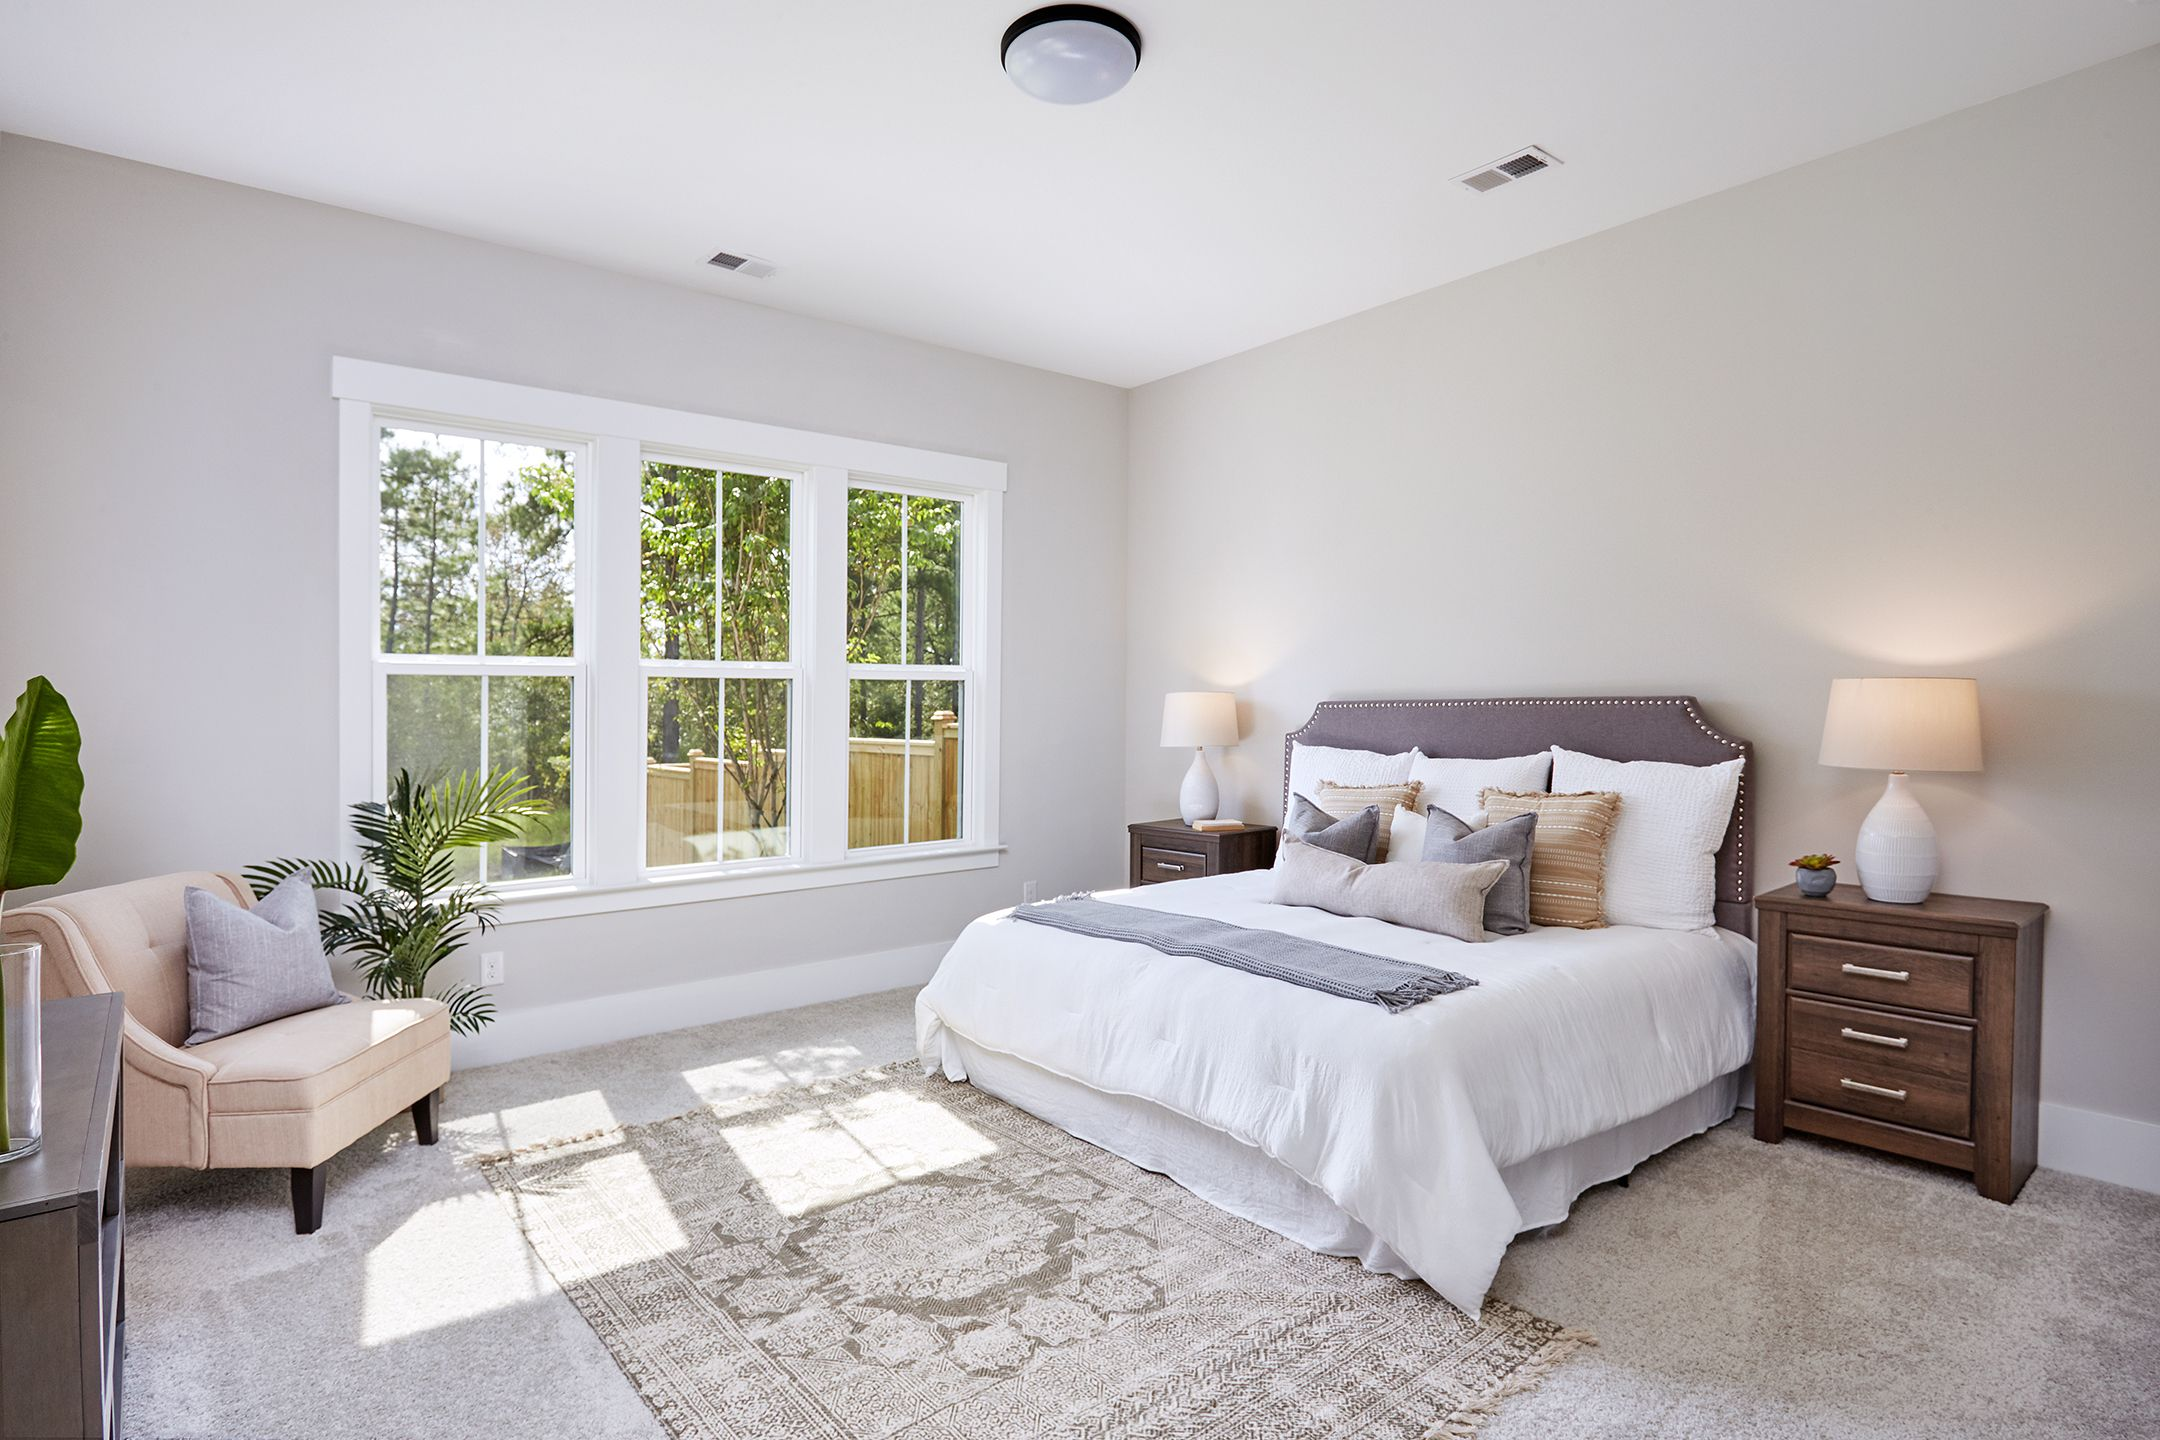 Bedroom featured in the Rutledge By Homes by Dickerson in Charleston, SC